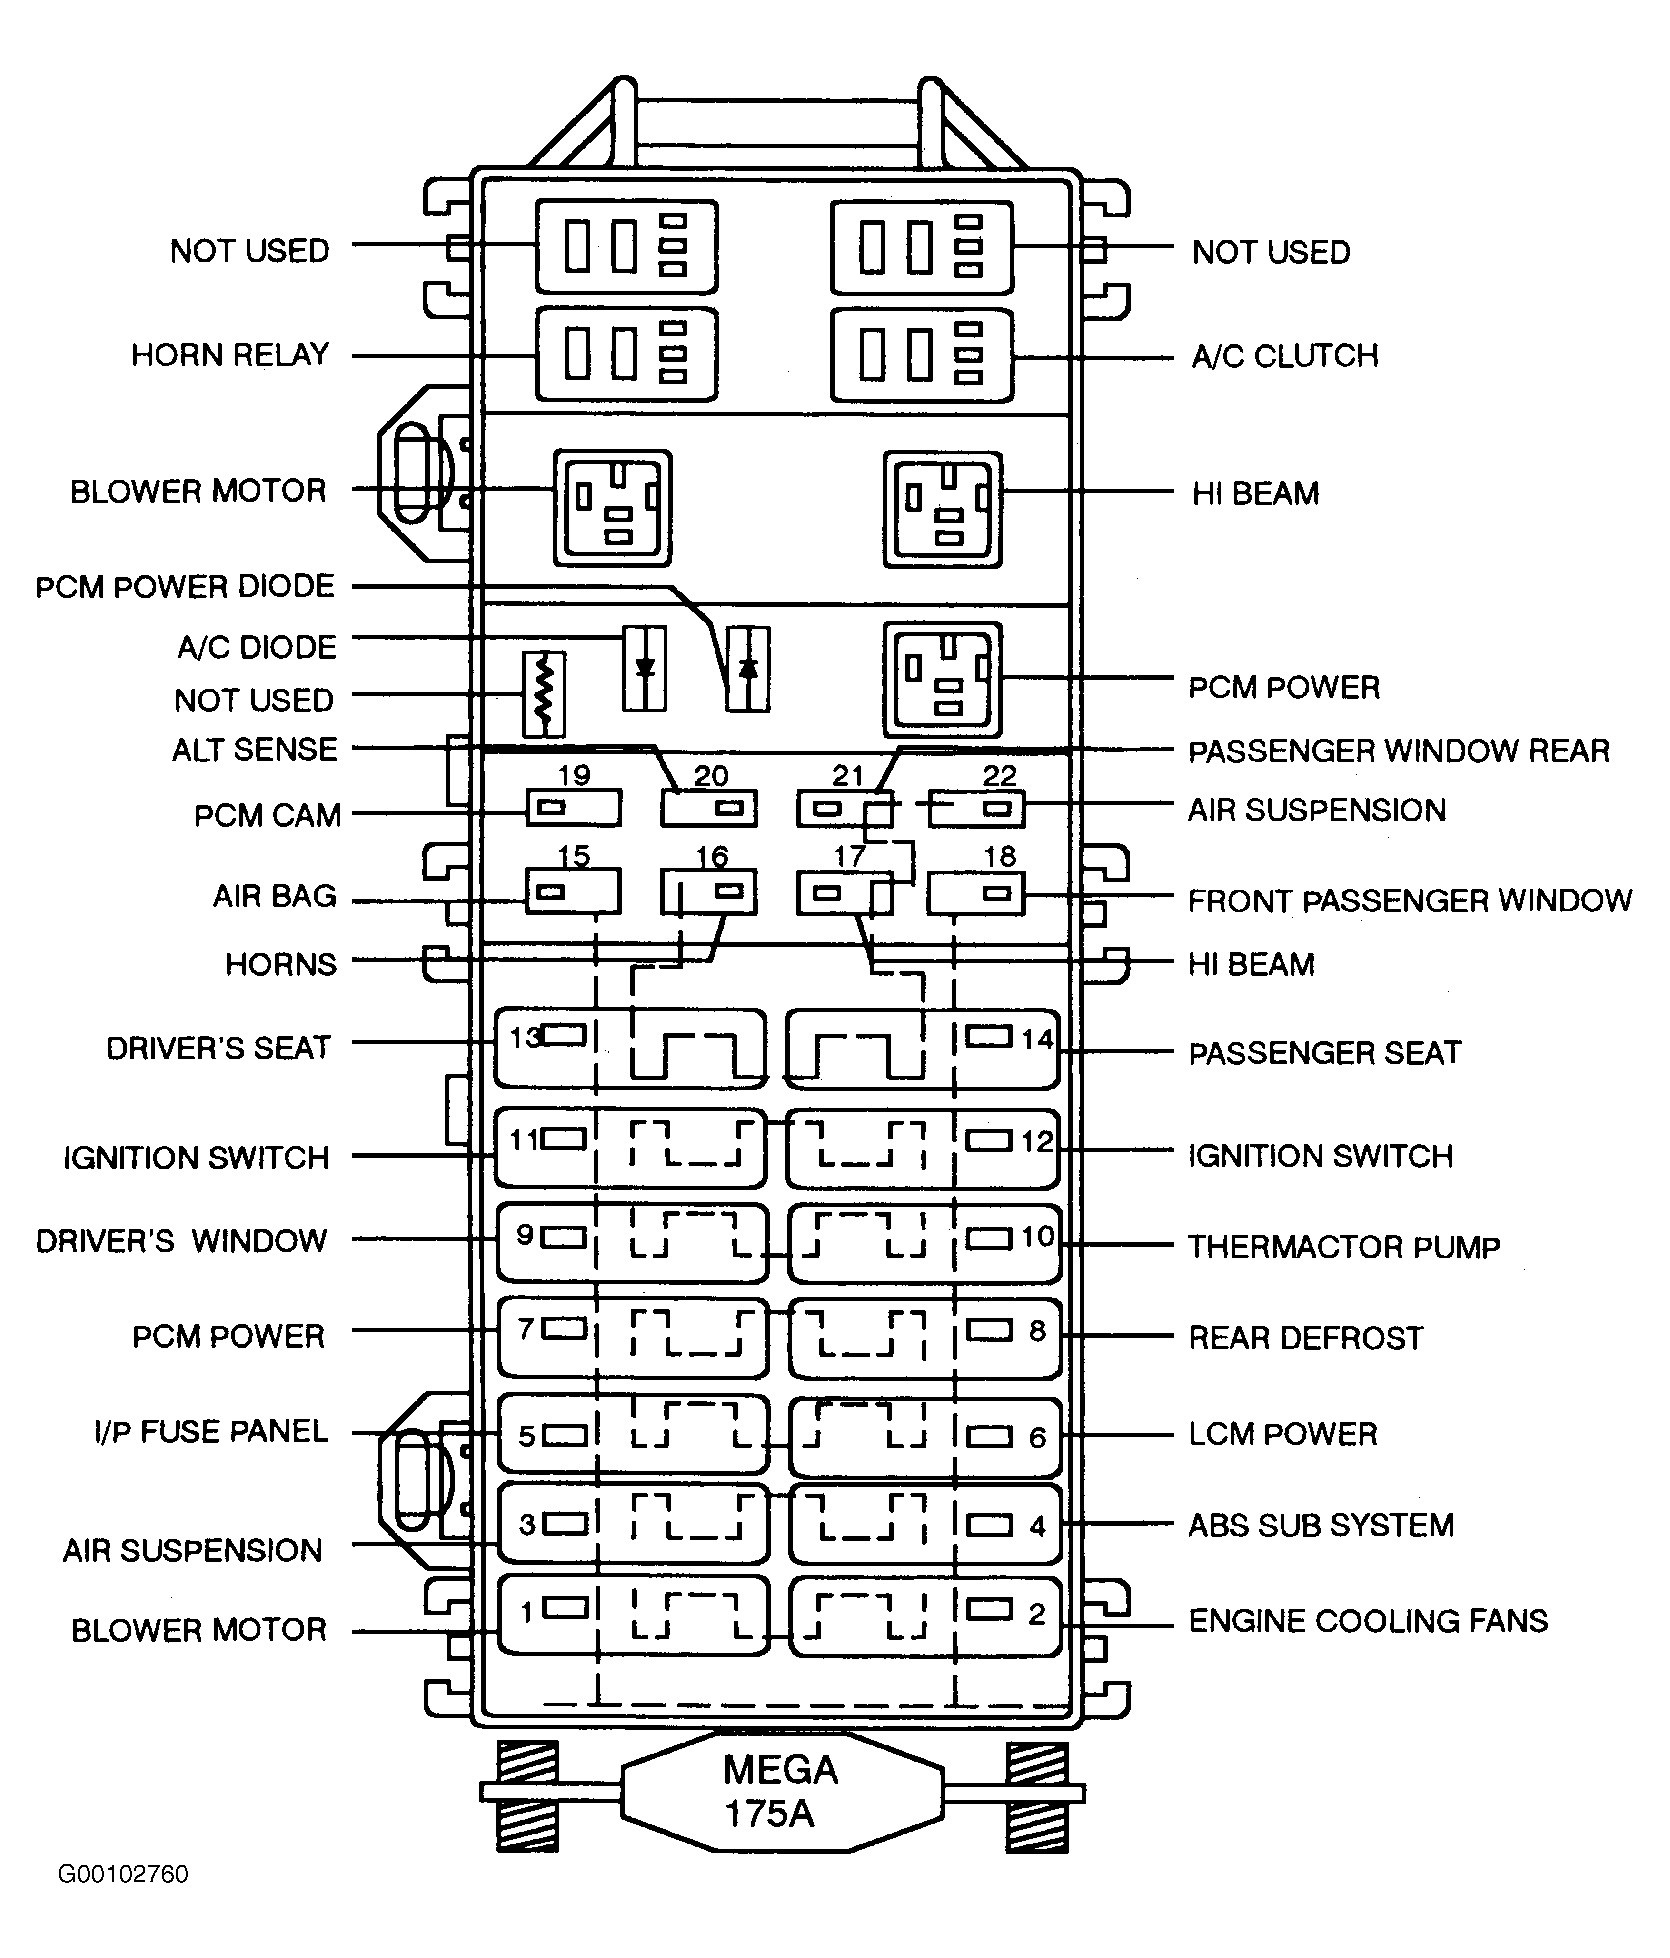 1997 geo prizm fuse diagram